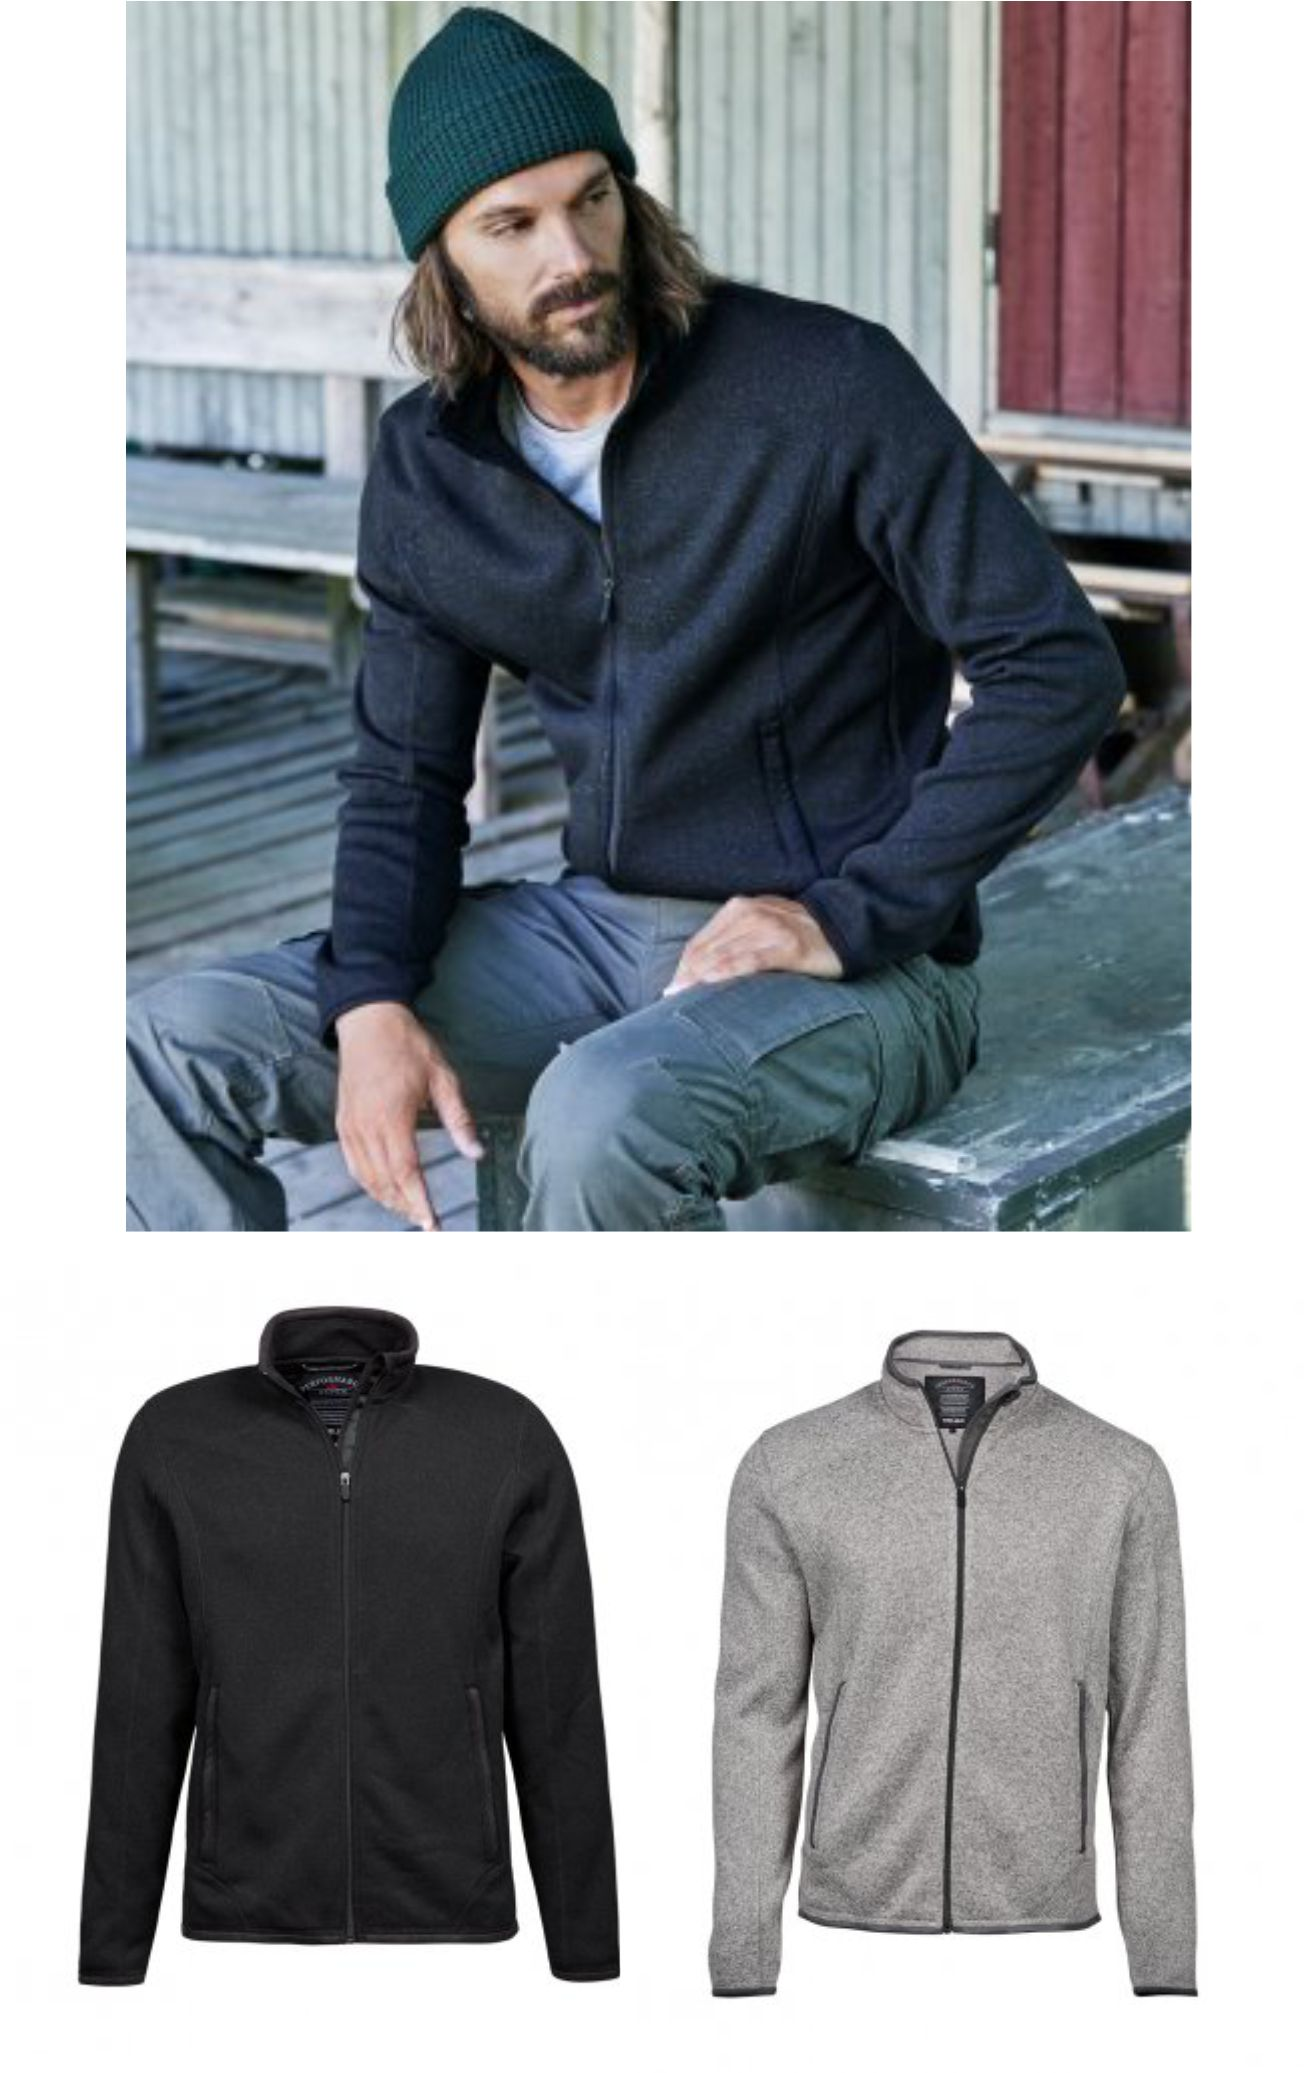 Tee Jays T9615 Knitted Outdoor Fleece Jacket